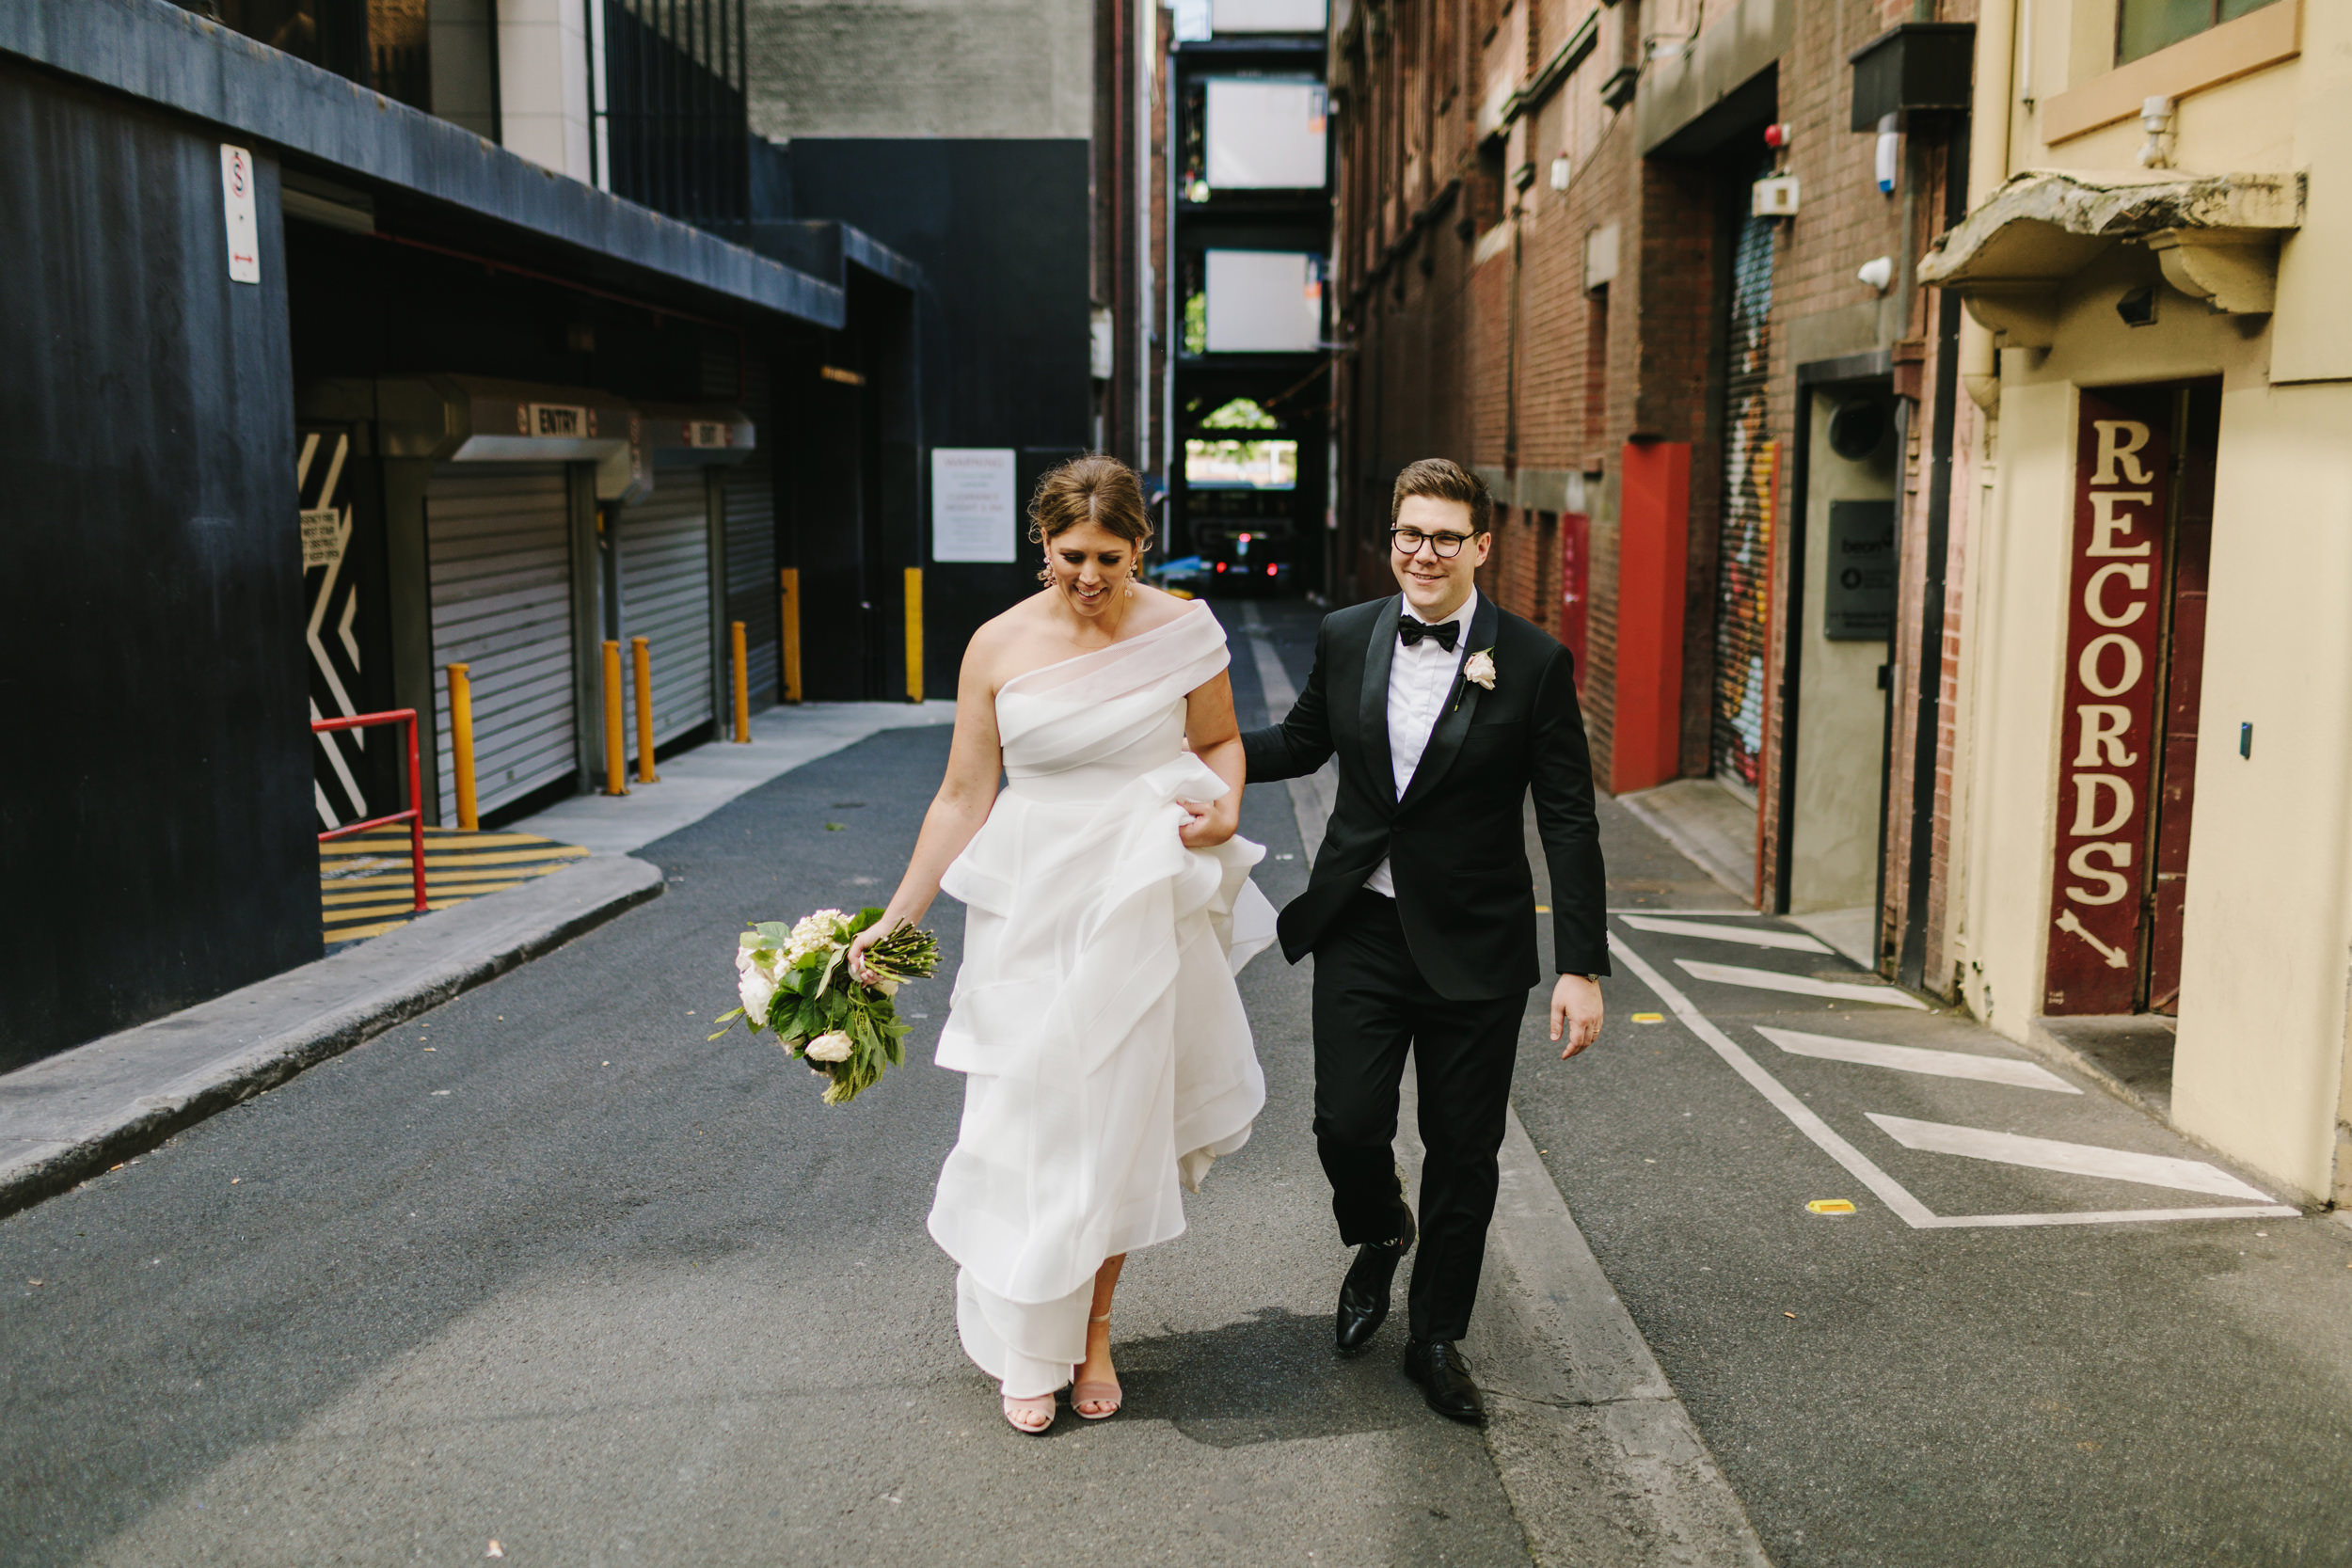 Melbourne_City_Rooftop_Wedding_Tyson_Brigette077.JPG